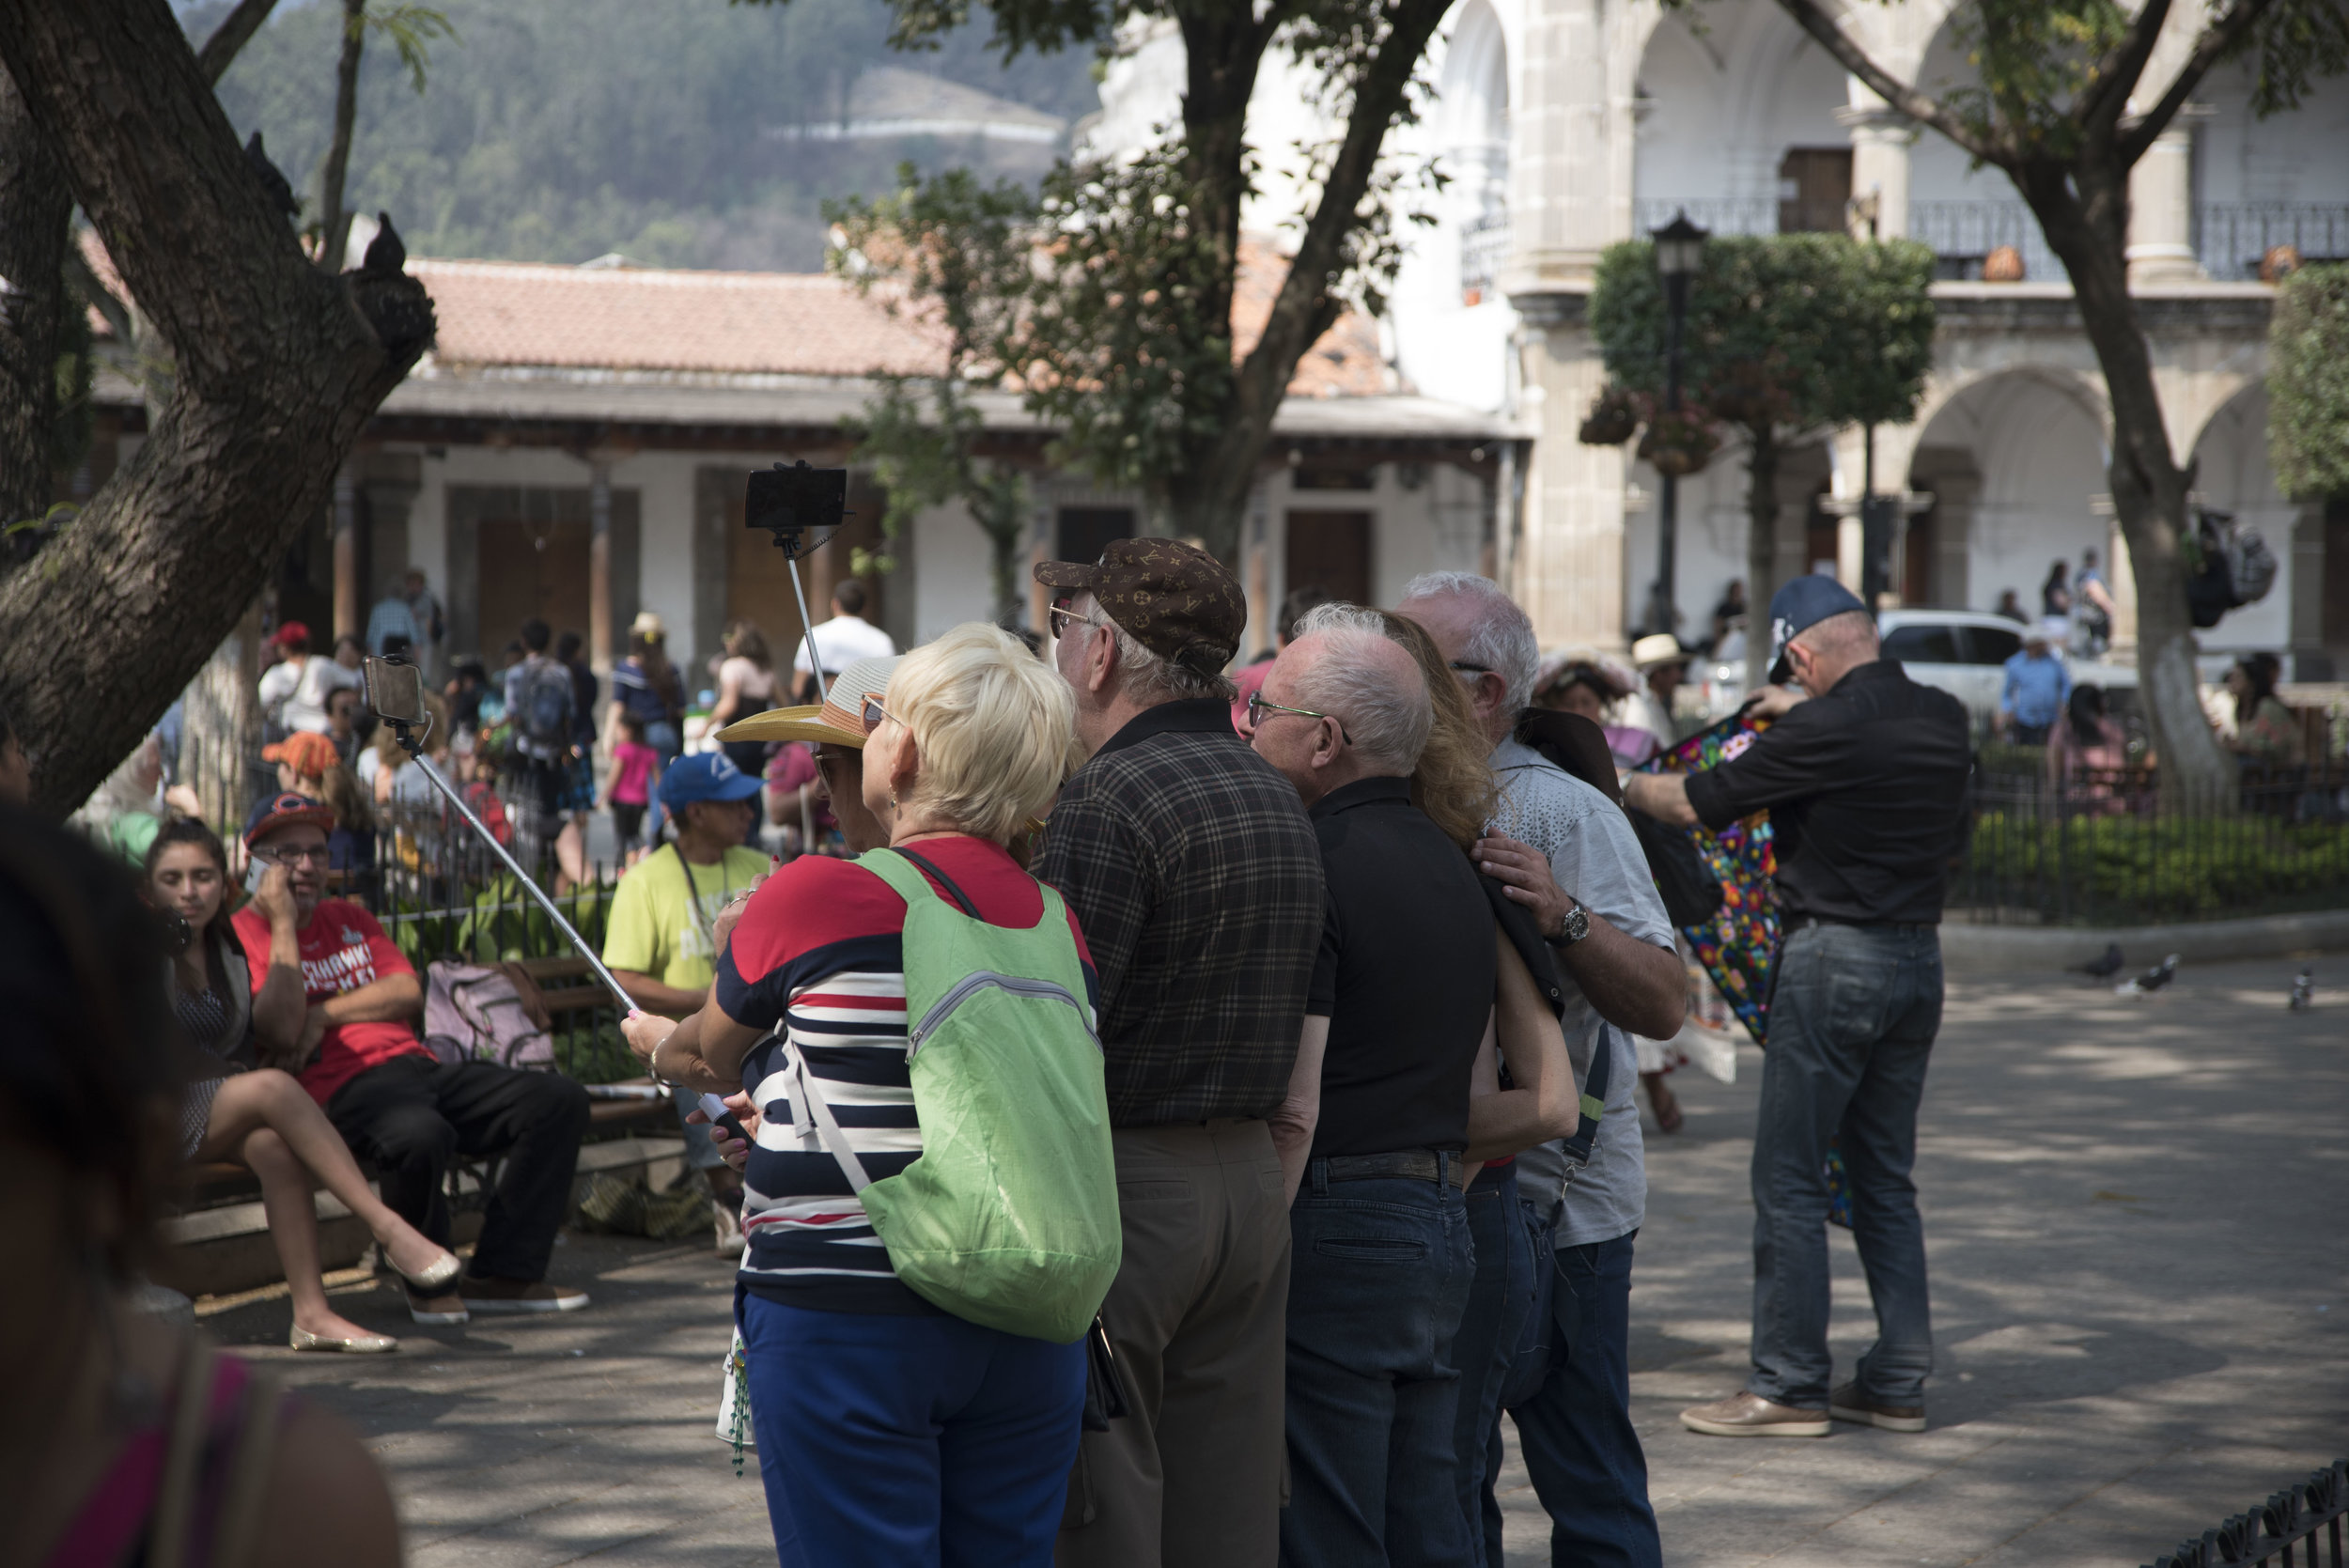 Selfie sticks in the wrong hands can lead to scenes like this. (Antigua, Guatemala; Feb 2017)